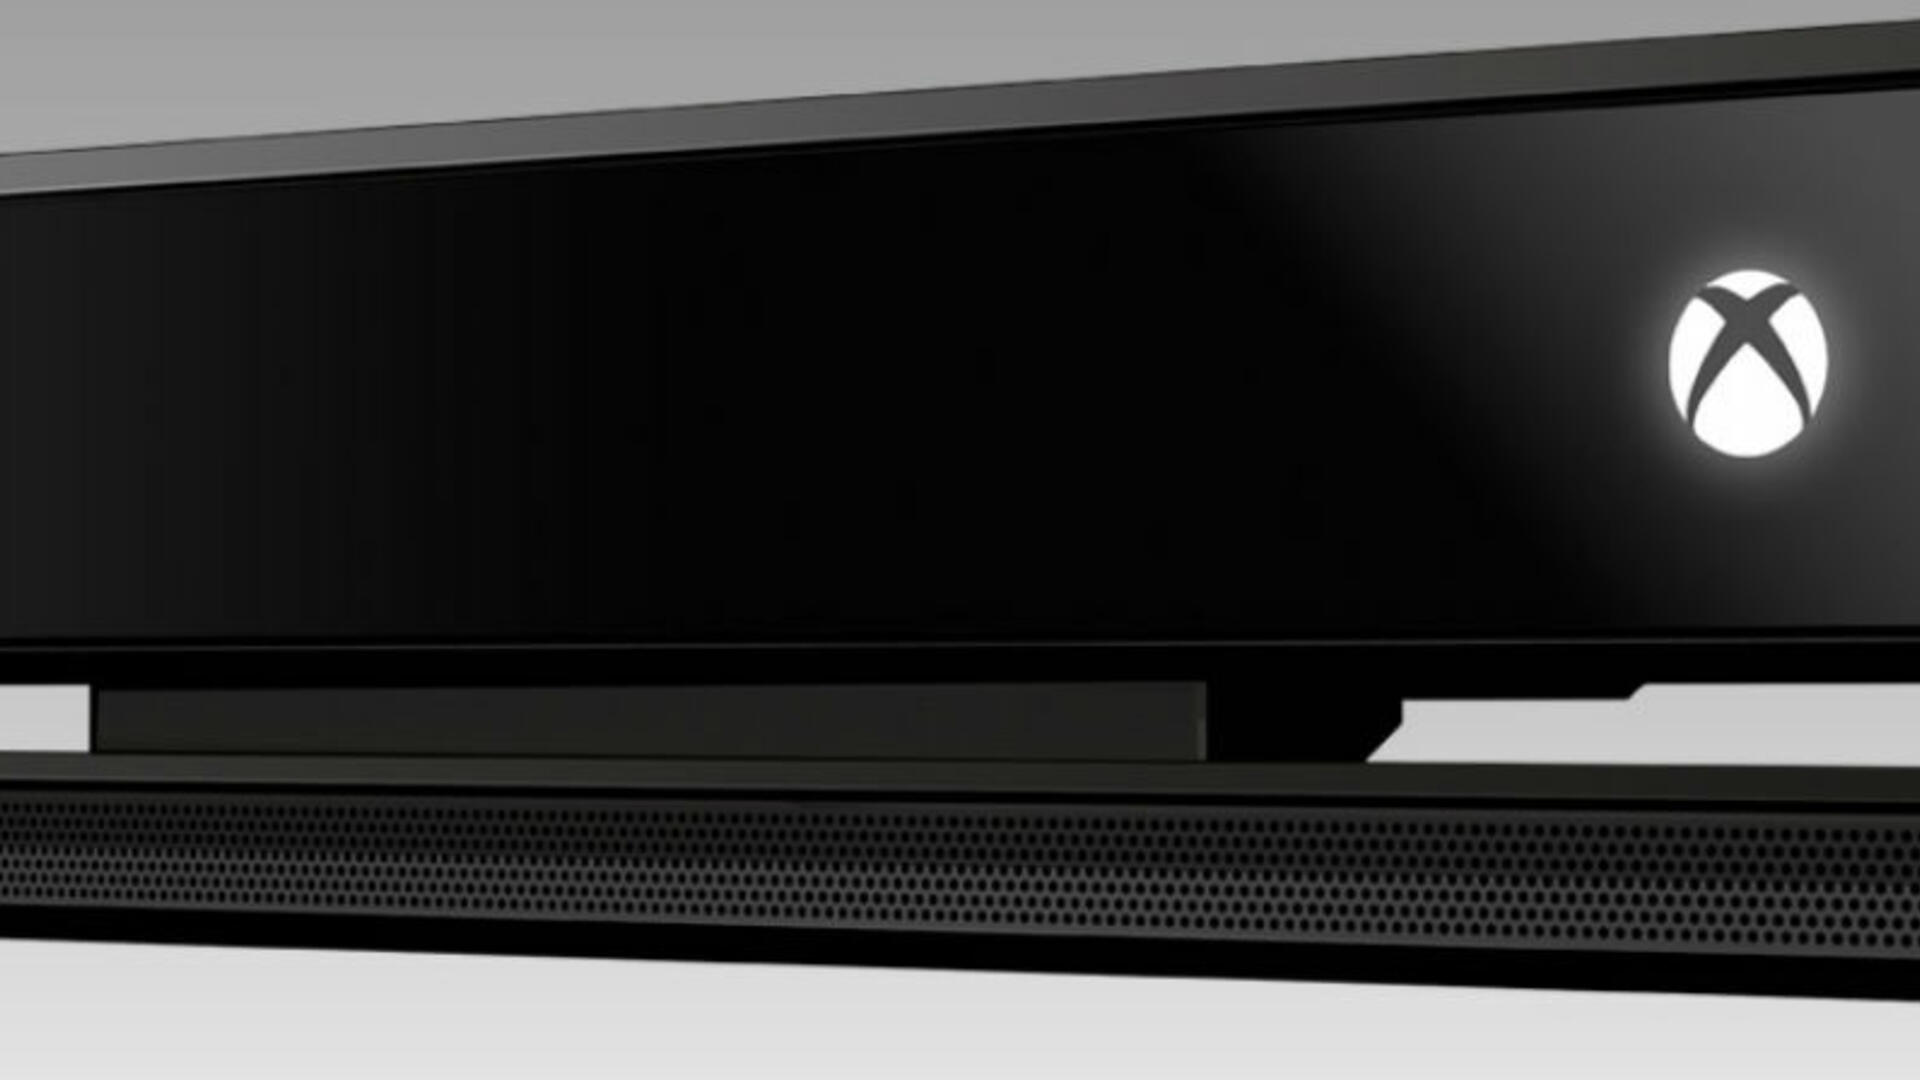 Microsoft's Kinect Is Finally Dead